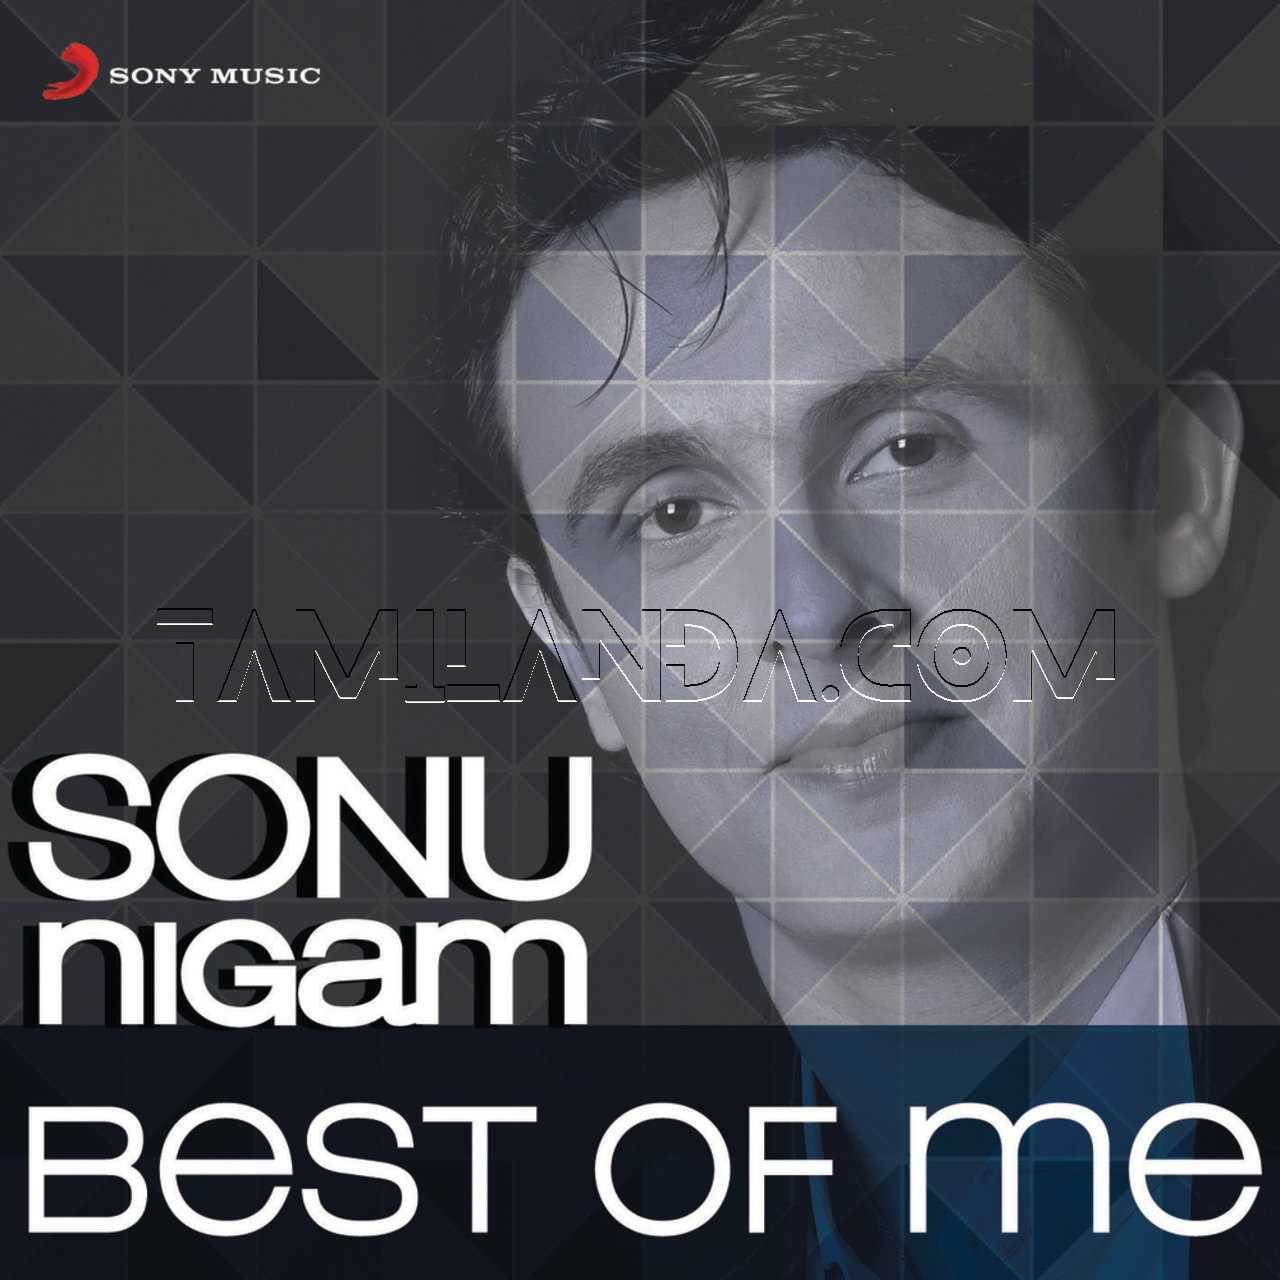 Sonu Nigam – Best of Me FLAC Songs